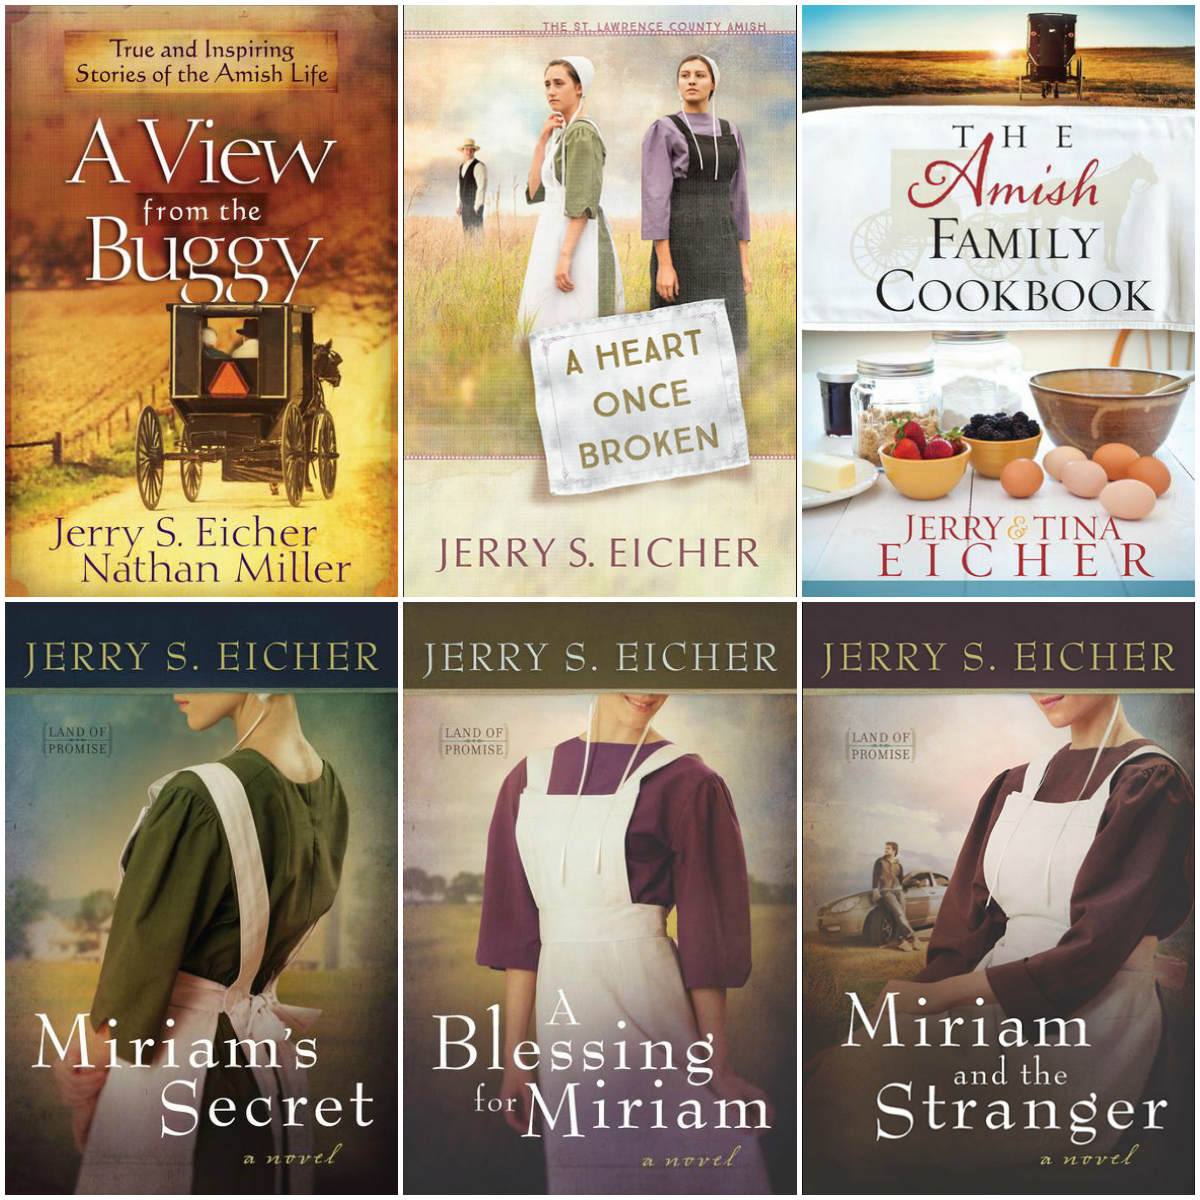 Get the real deal on Amish life, love, and food with this giveaway of 6  #JerryEicher books! One winner will receive all 6 books pictured.